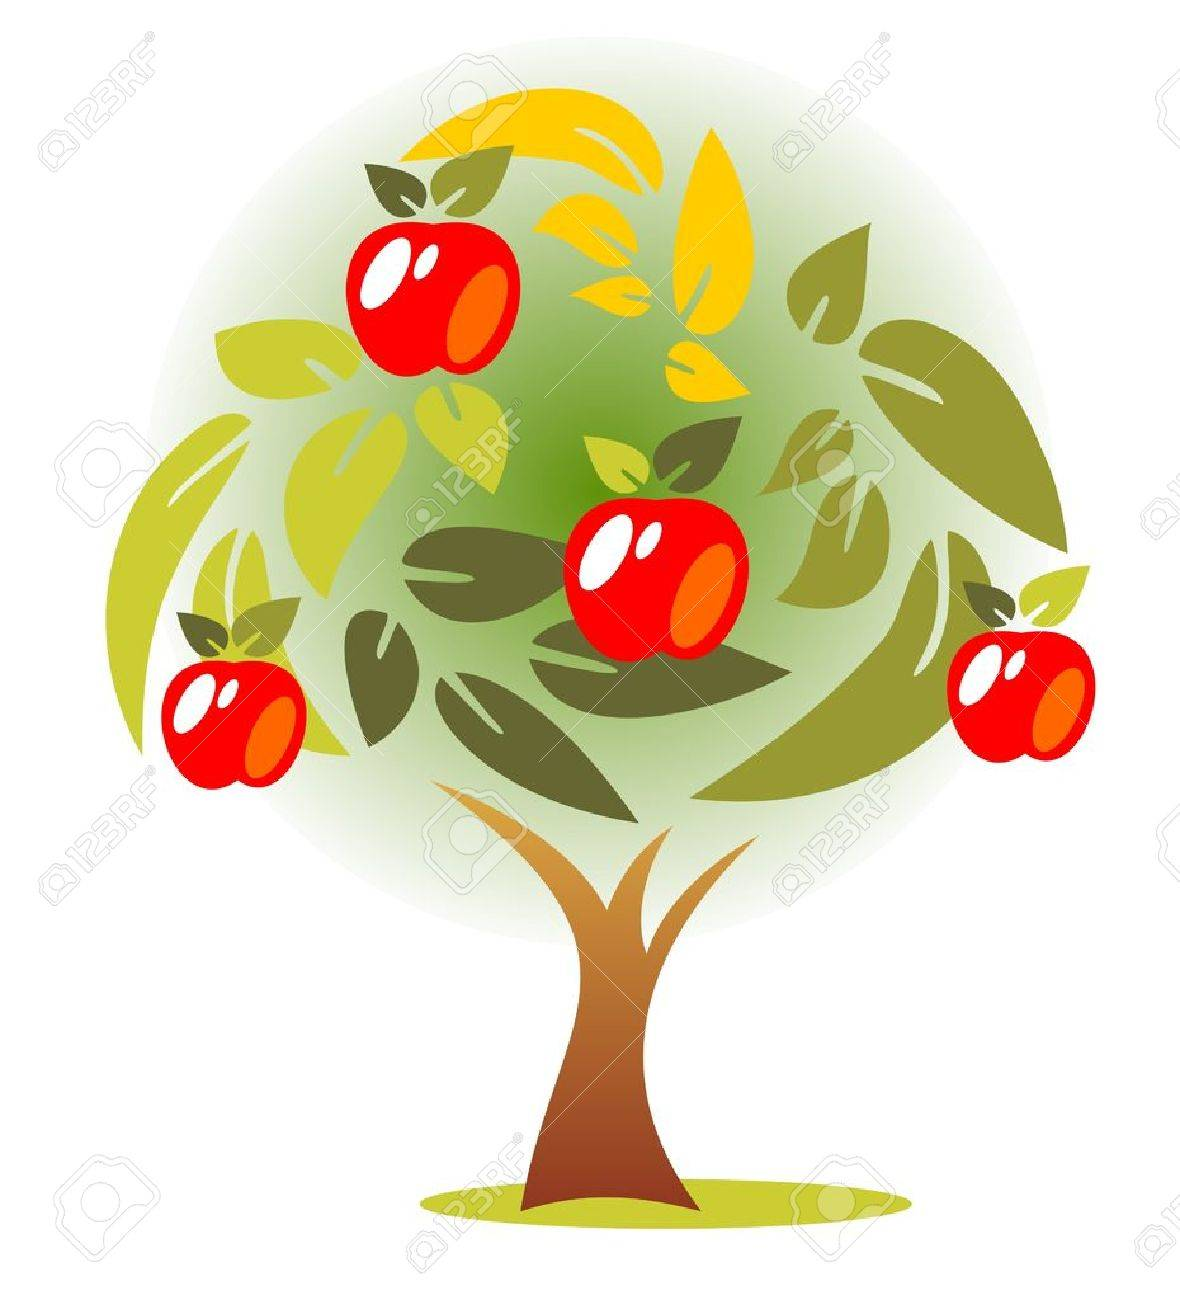 Stylized autumn apple tree on a green background.